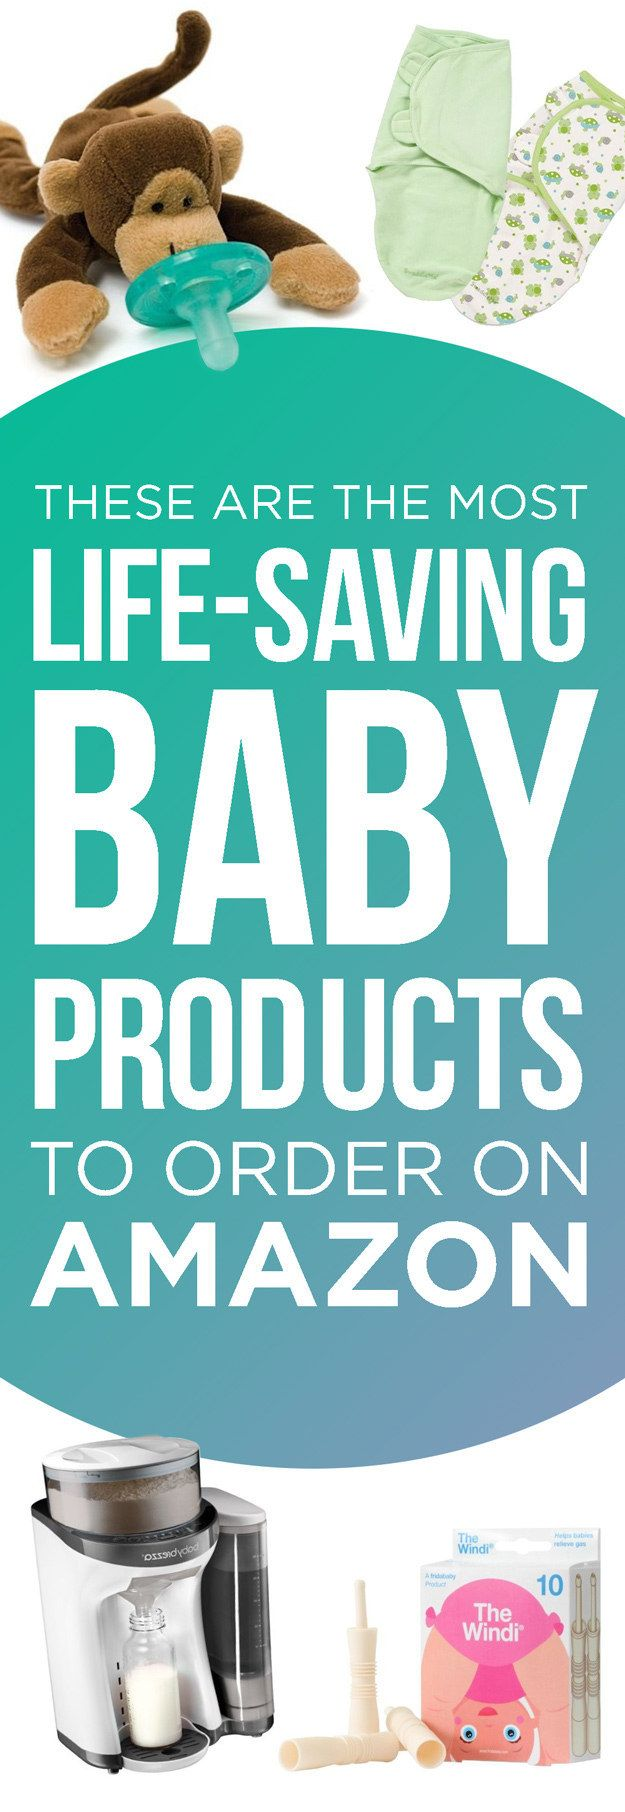 21 Of The Most Life Saving Baby Products To Order On Amazon